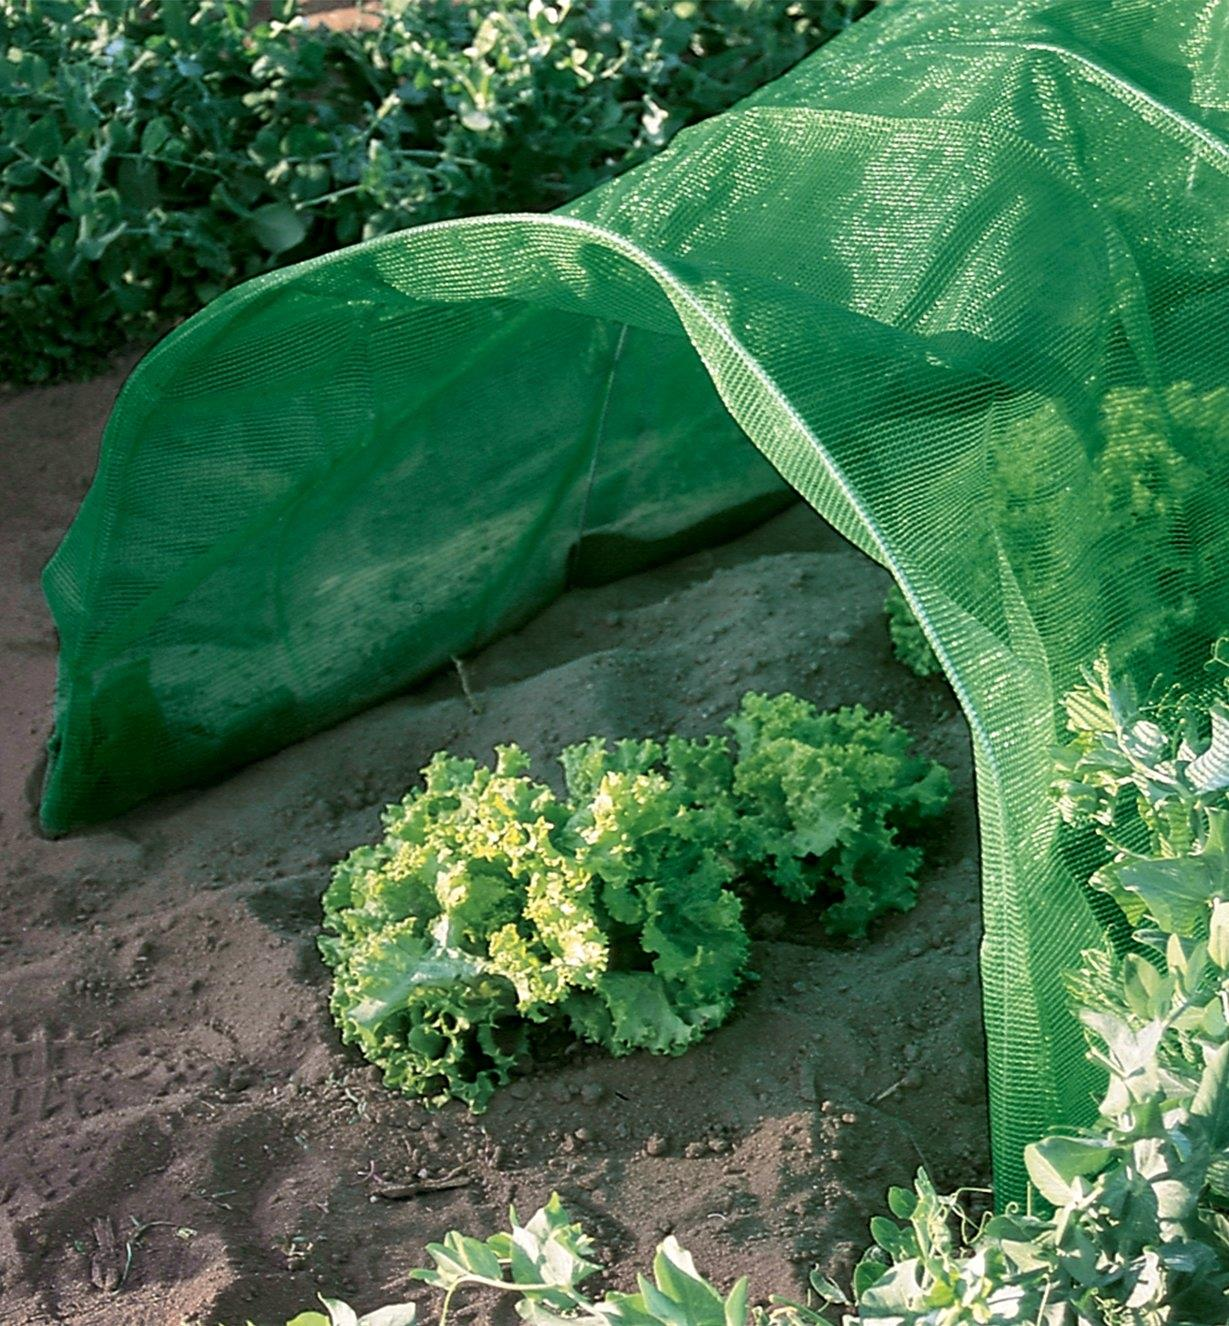 BL612 - Shade Cloth, 2m x 4m (6 1/2' x 13')